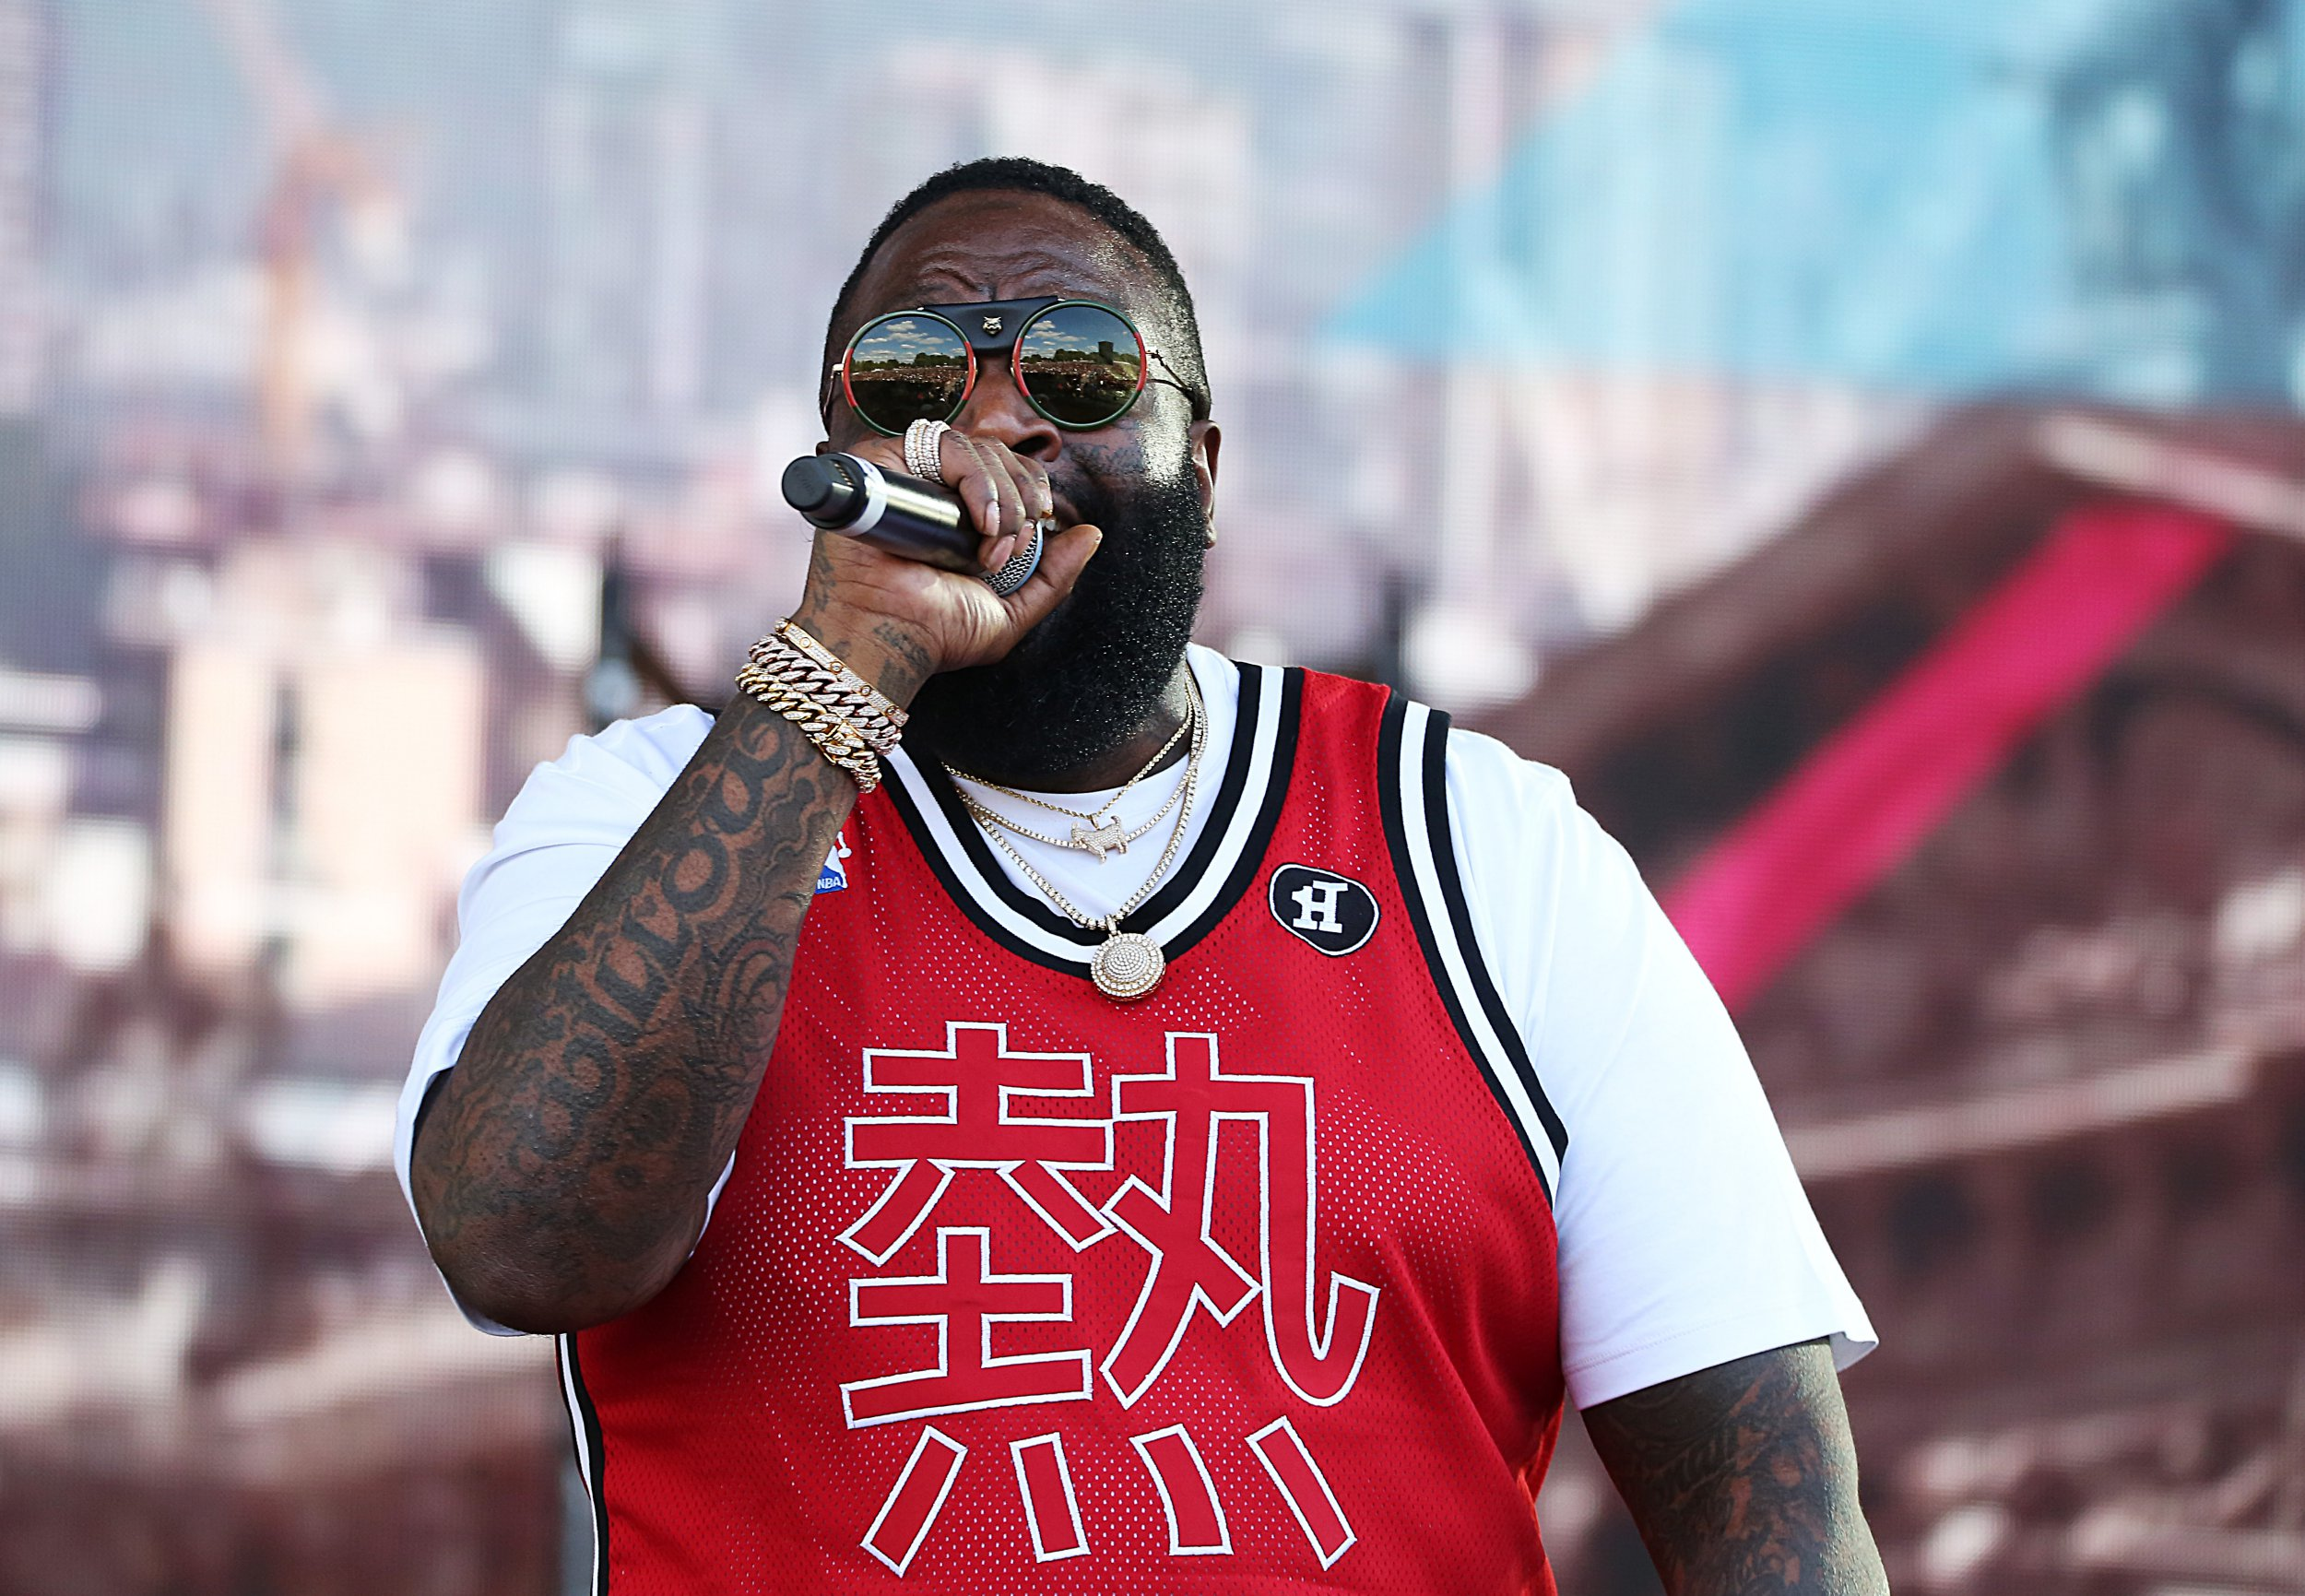 Rick Ross performing at Wireless Festival 2018, Finsbury Park, London UK, 08 July 2018, Photo by Brett D. Cove Pictured: Rick Ross,William Leonard Roberts II Ref: SPL5008822 080718 NON-EXCLUSIVE Picture by: Brett D. Cove / SplashNews.com Splash News and Pictures Los Angeles: 310-821-2666 New York: 212-619-2666 London: 0207 644 7656 Milan: +39 02 4399 8577 Sydney: +61 02 9240 7700 photodesk@splashnews.com World Rights,